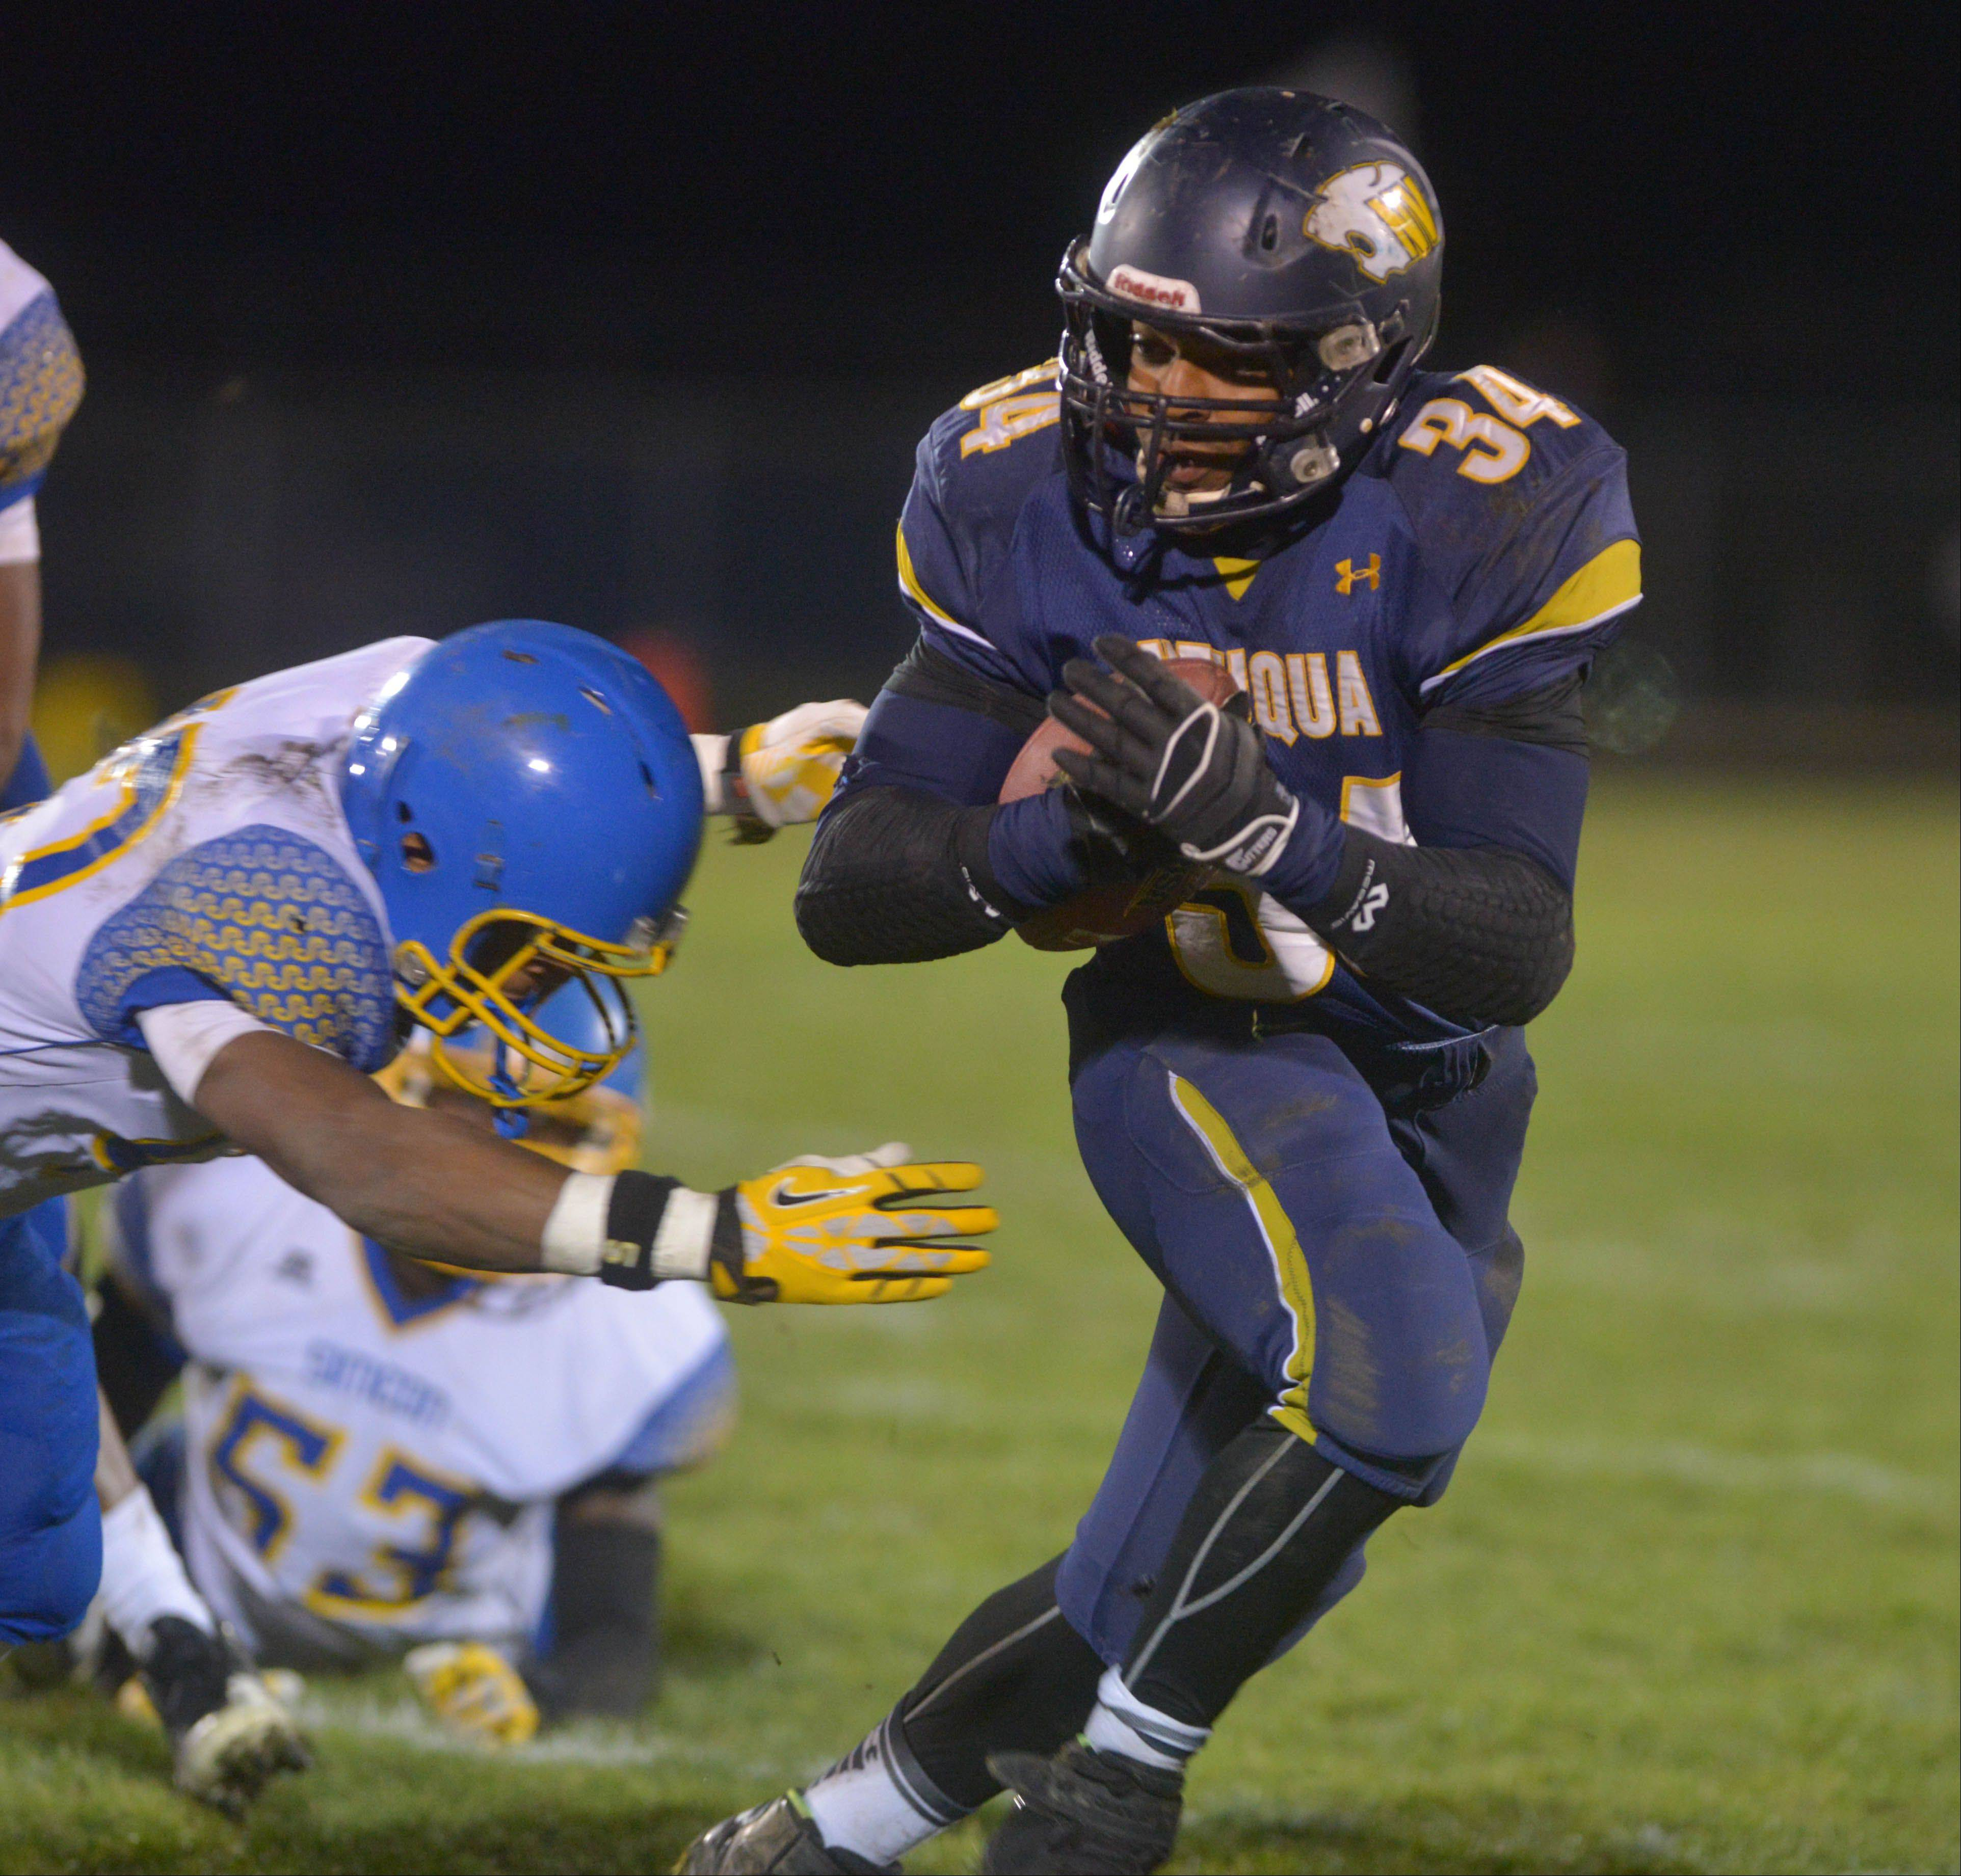 Neuqua Valley's TJ Scruggs picks up yardage against Simeon Saturday night during the Wildcats' Class 8A playoff win.